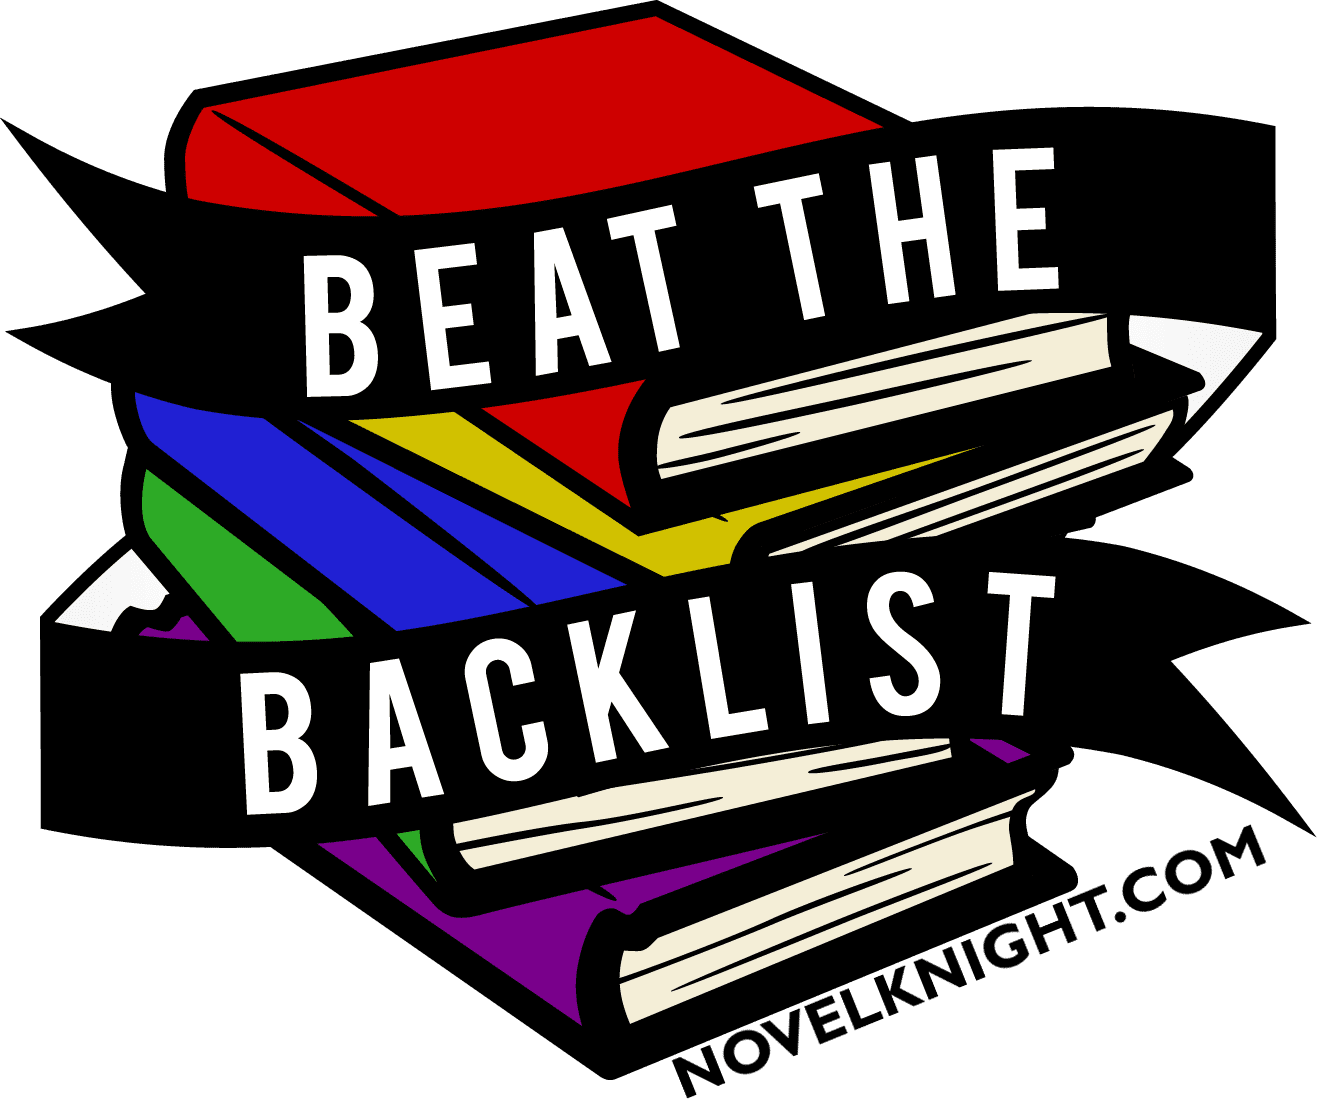 Beat the Backlist badge created by Austine at A Novel Knight and is used with permission.